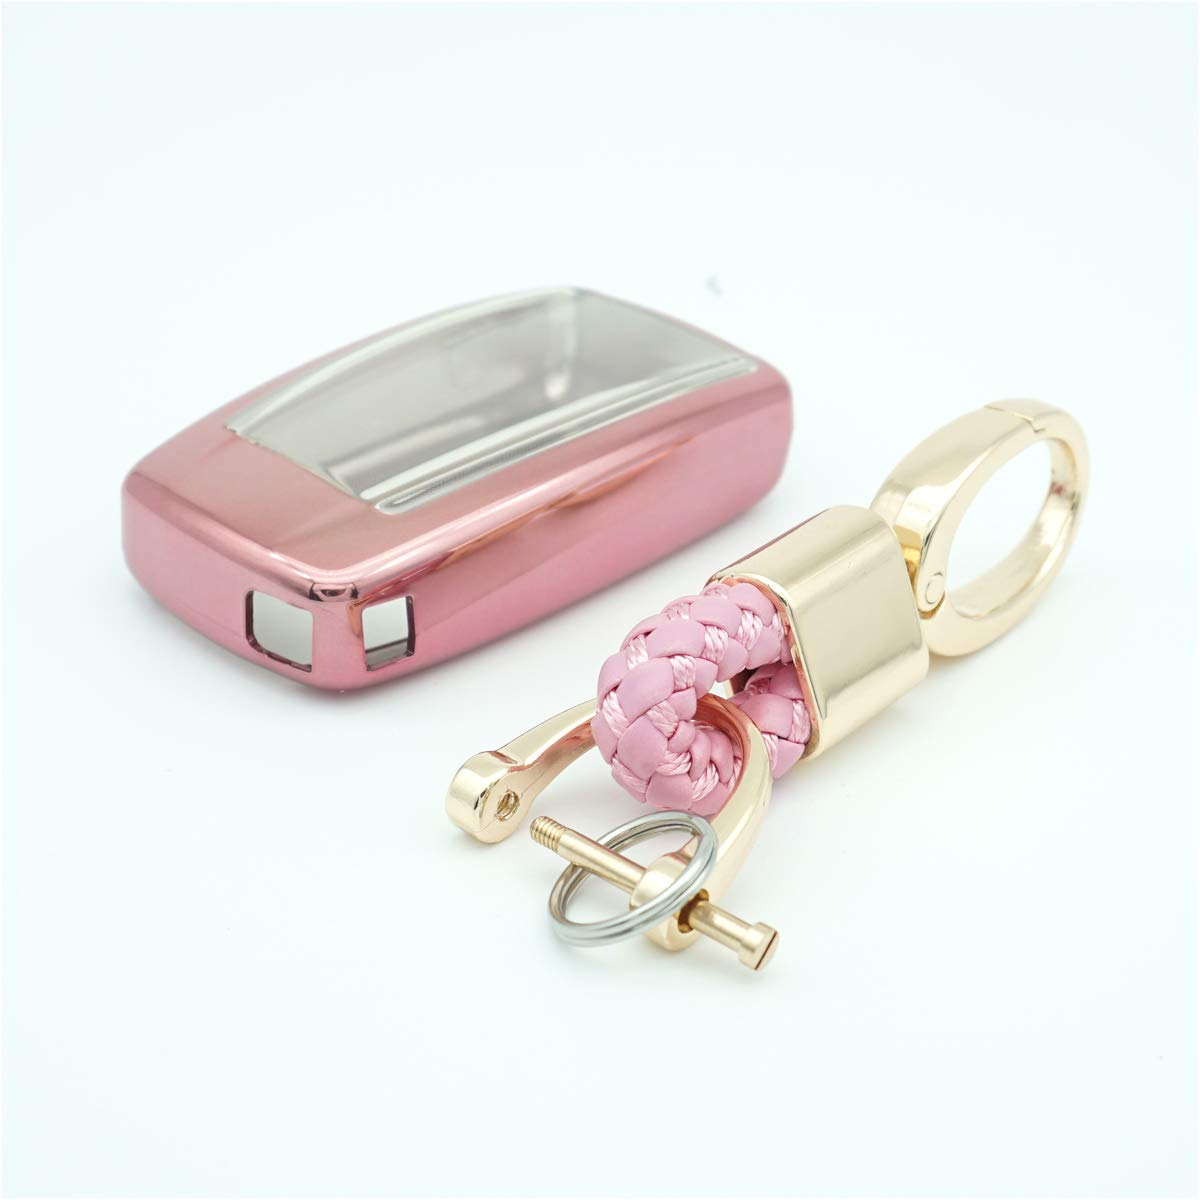 not fit Engine Hold TM 2 3 4 Buttons TPU Smart Remote Key Fob case Cover for Acura RLX RDX MDX ILX TLX PLX NSX,with Key Chain Royalfox Pink with Bling Chain